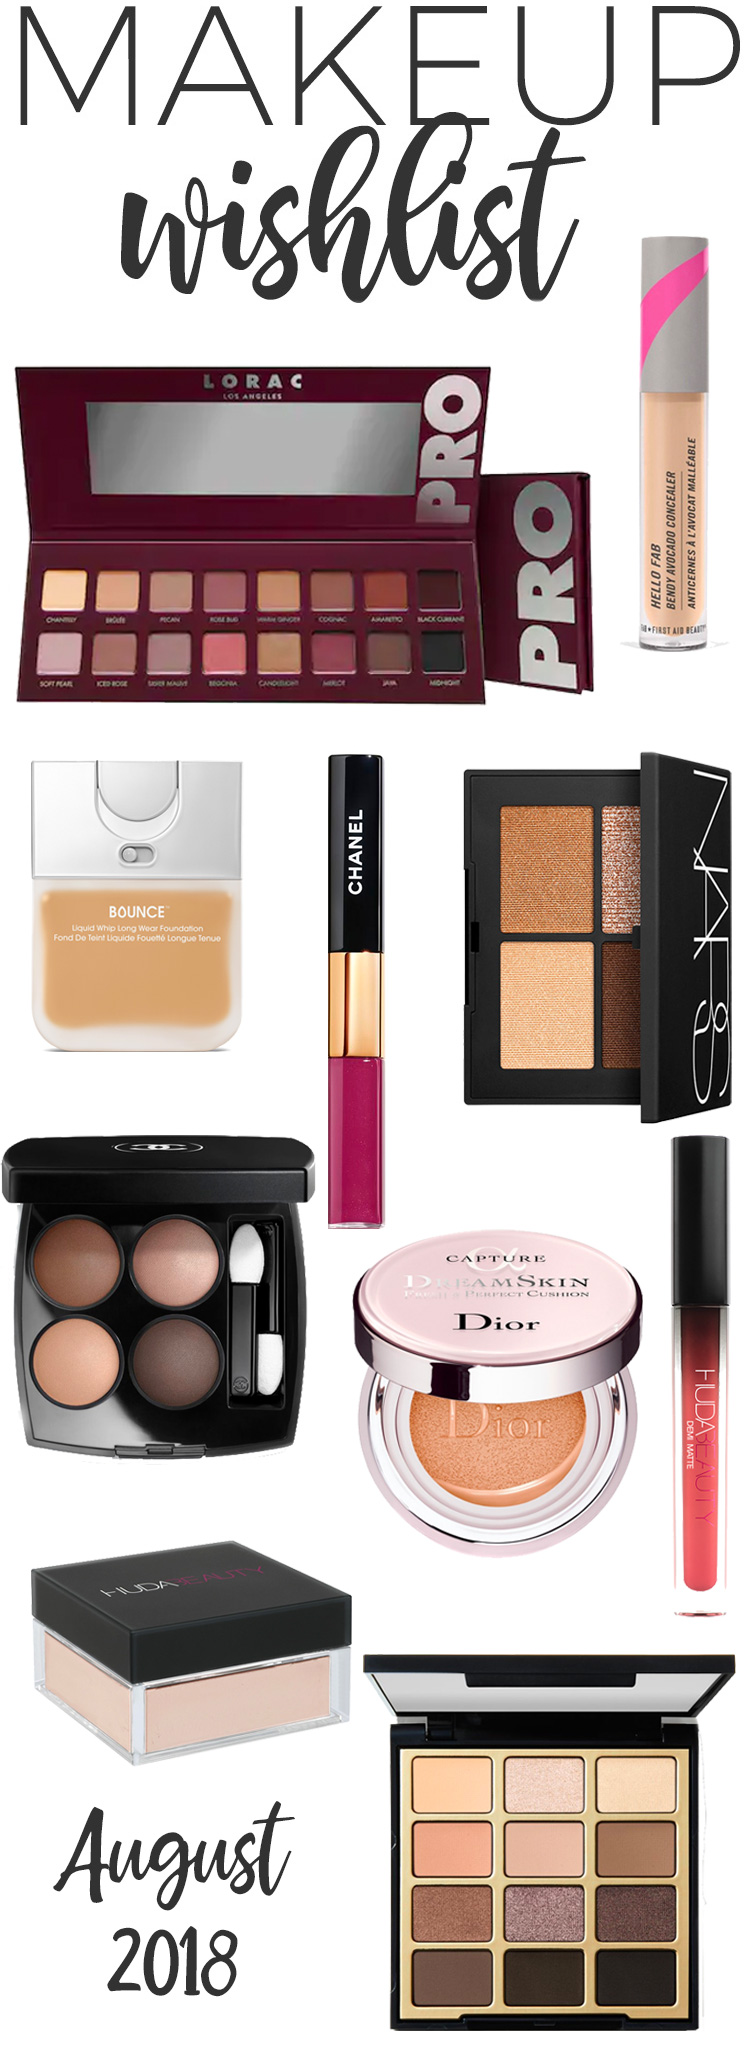 Makeup Wishlist for August 2018